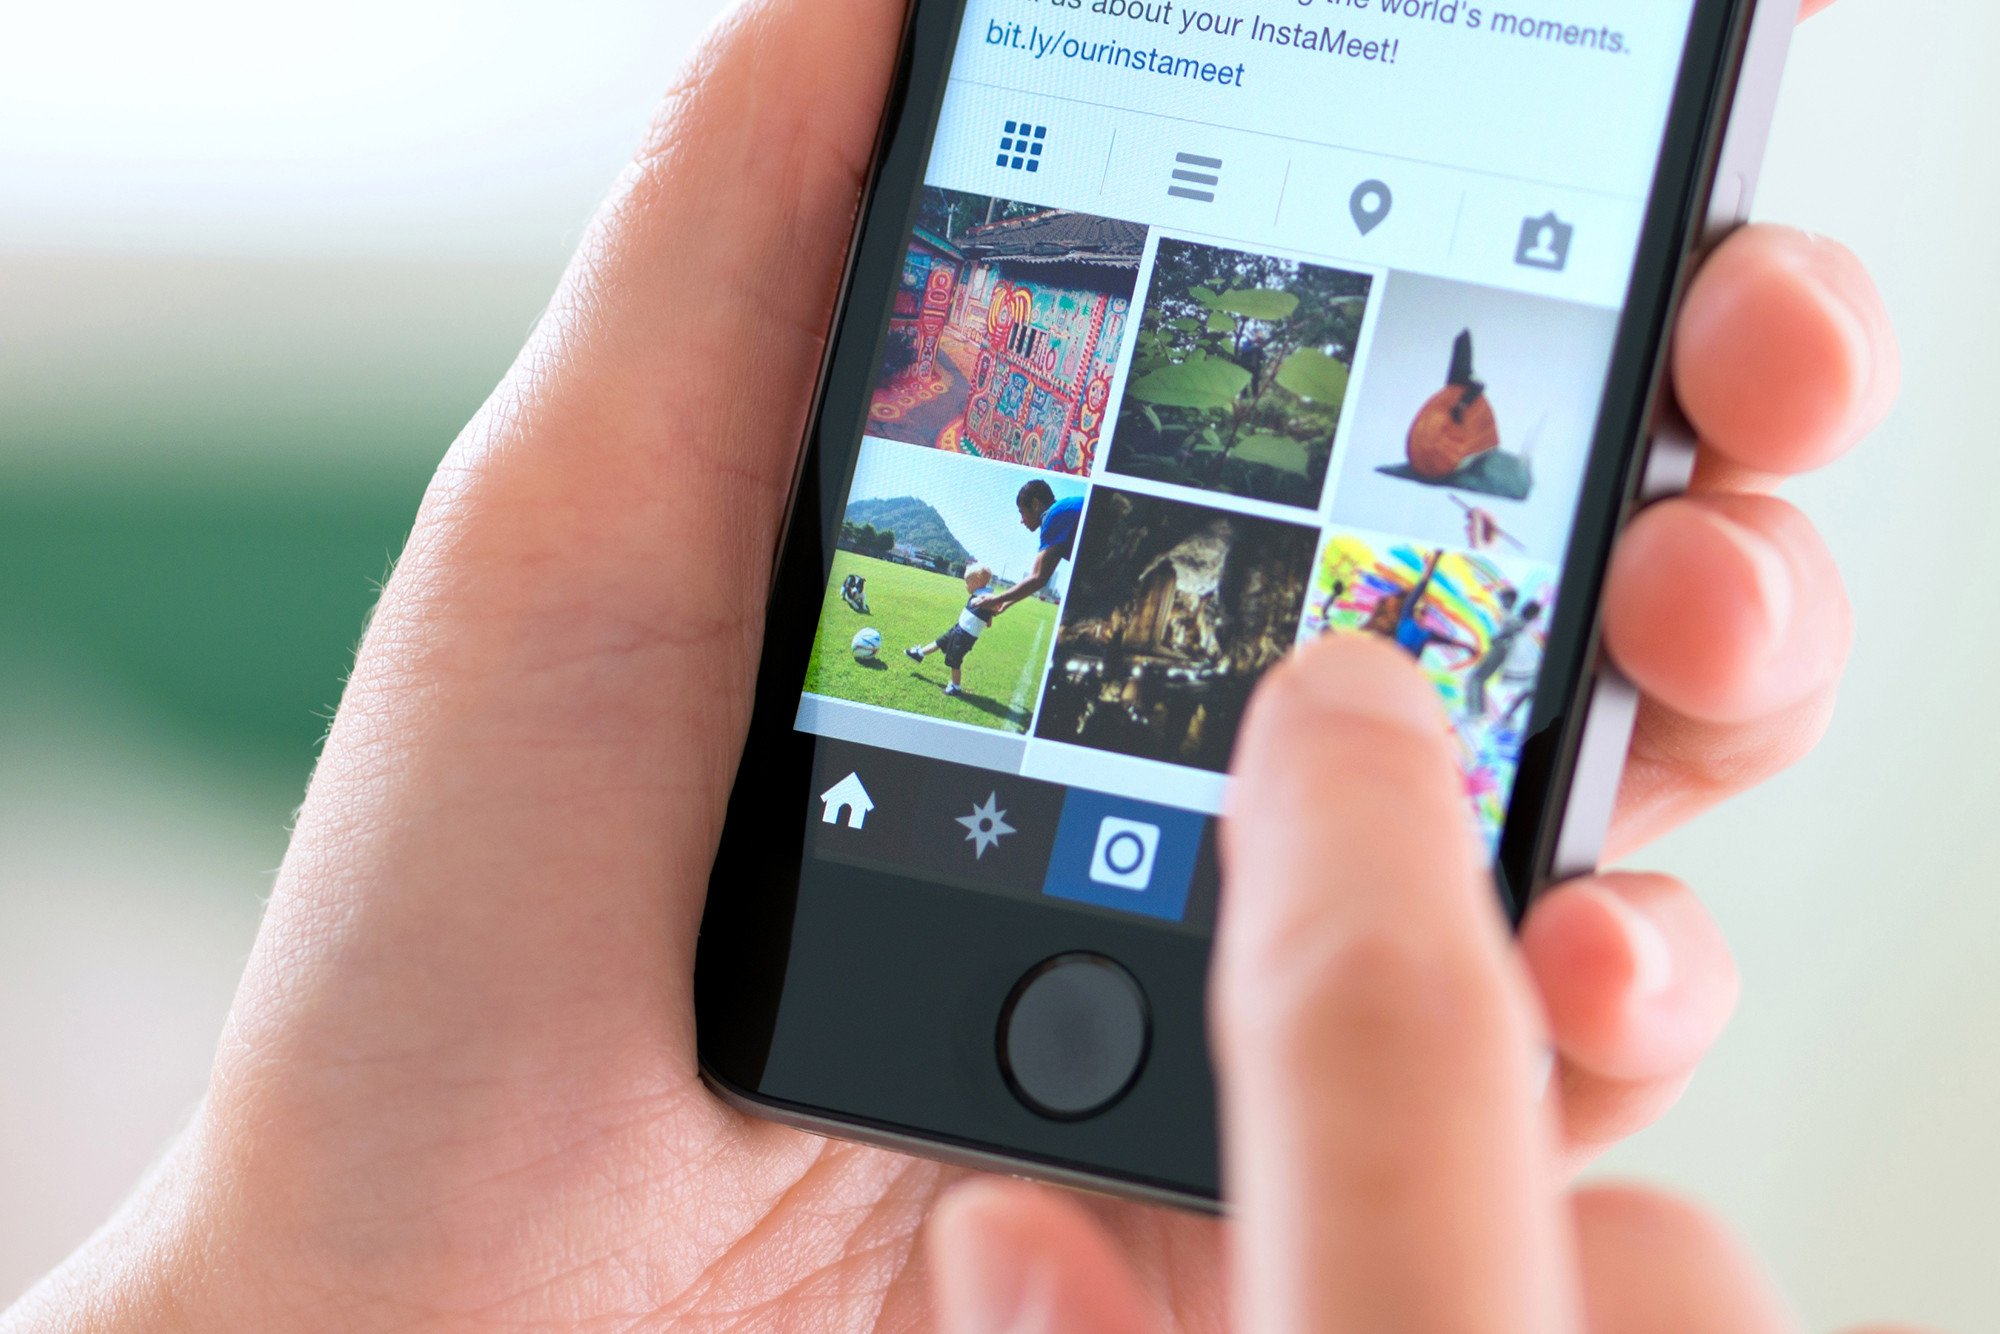 Instagram will finally let you download all your pictures